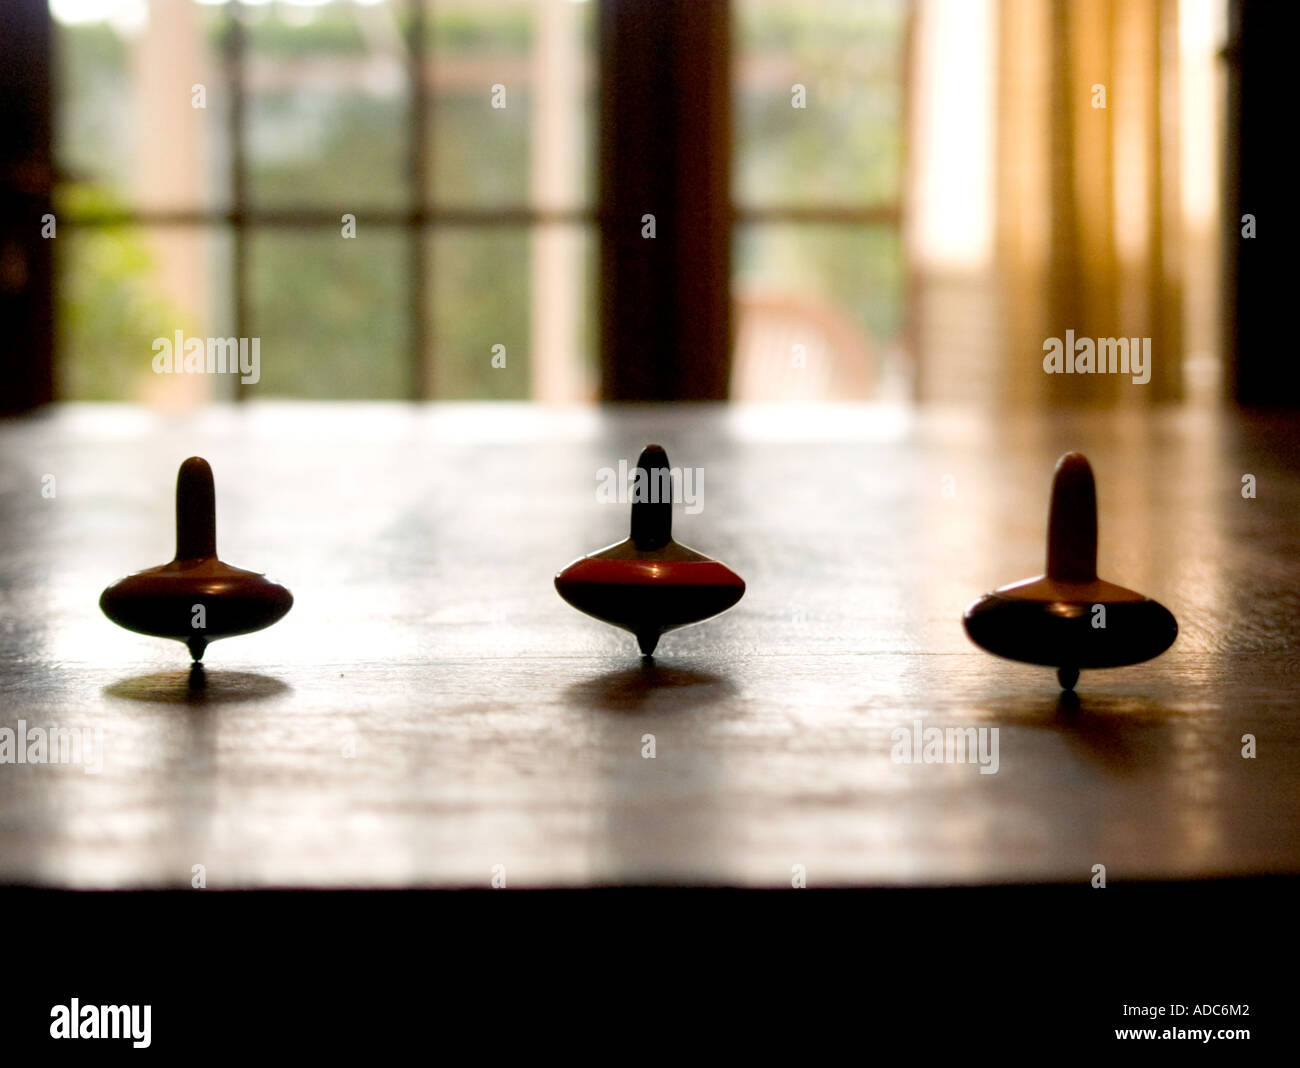 three spinning tops spinning in line on kitchen table - Stock Image